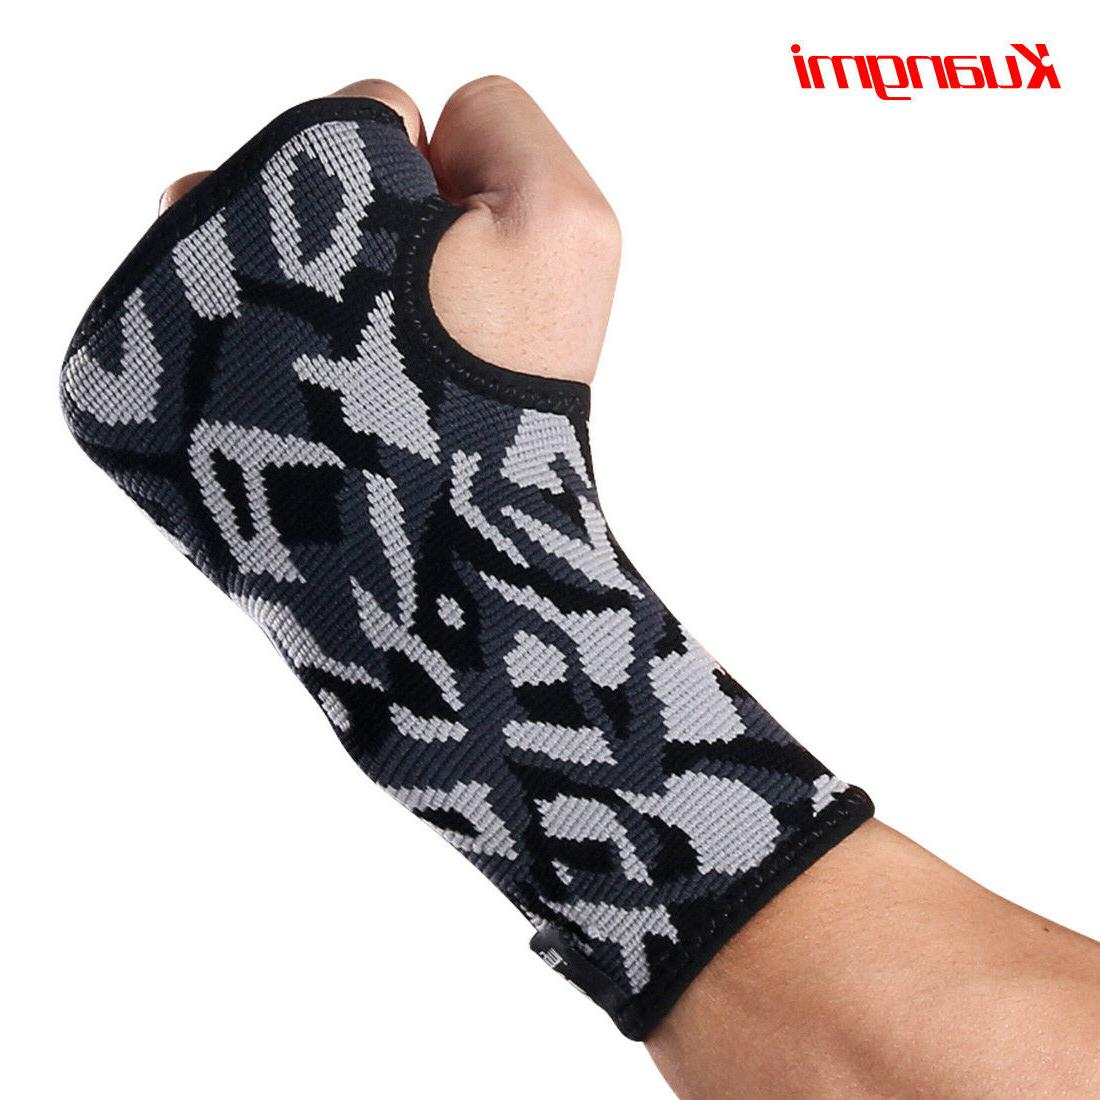 Kuangmi Compression Wrist Support Brace for Carpal Tunnel, A